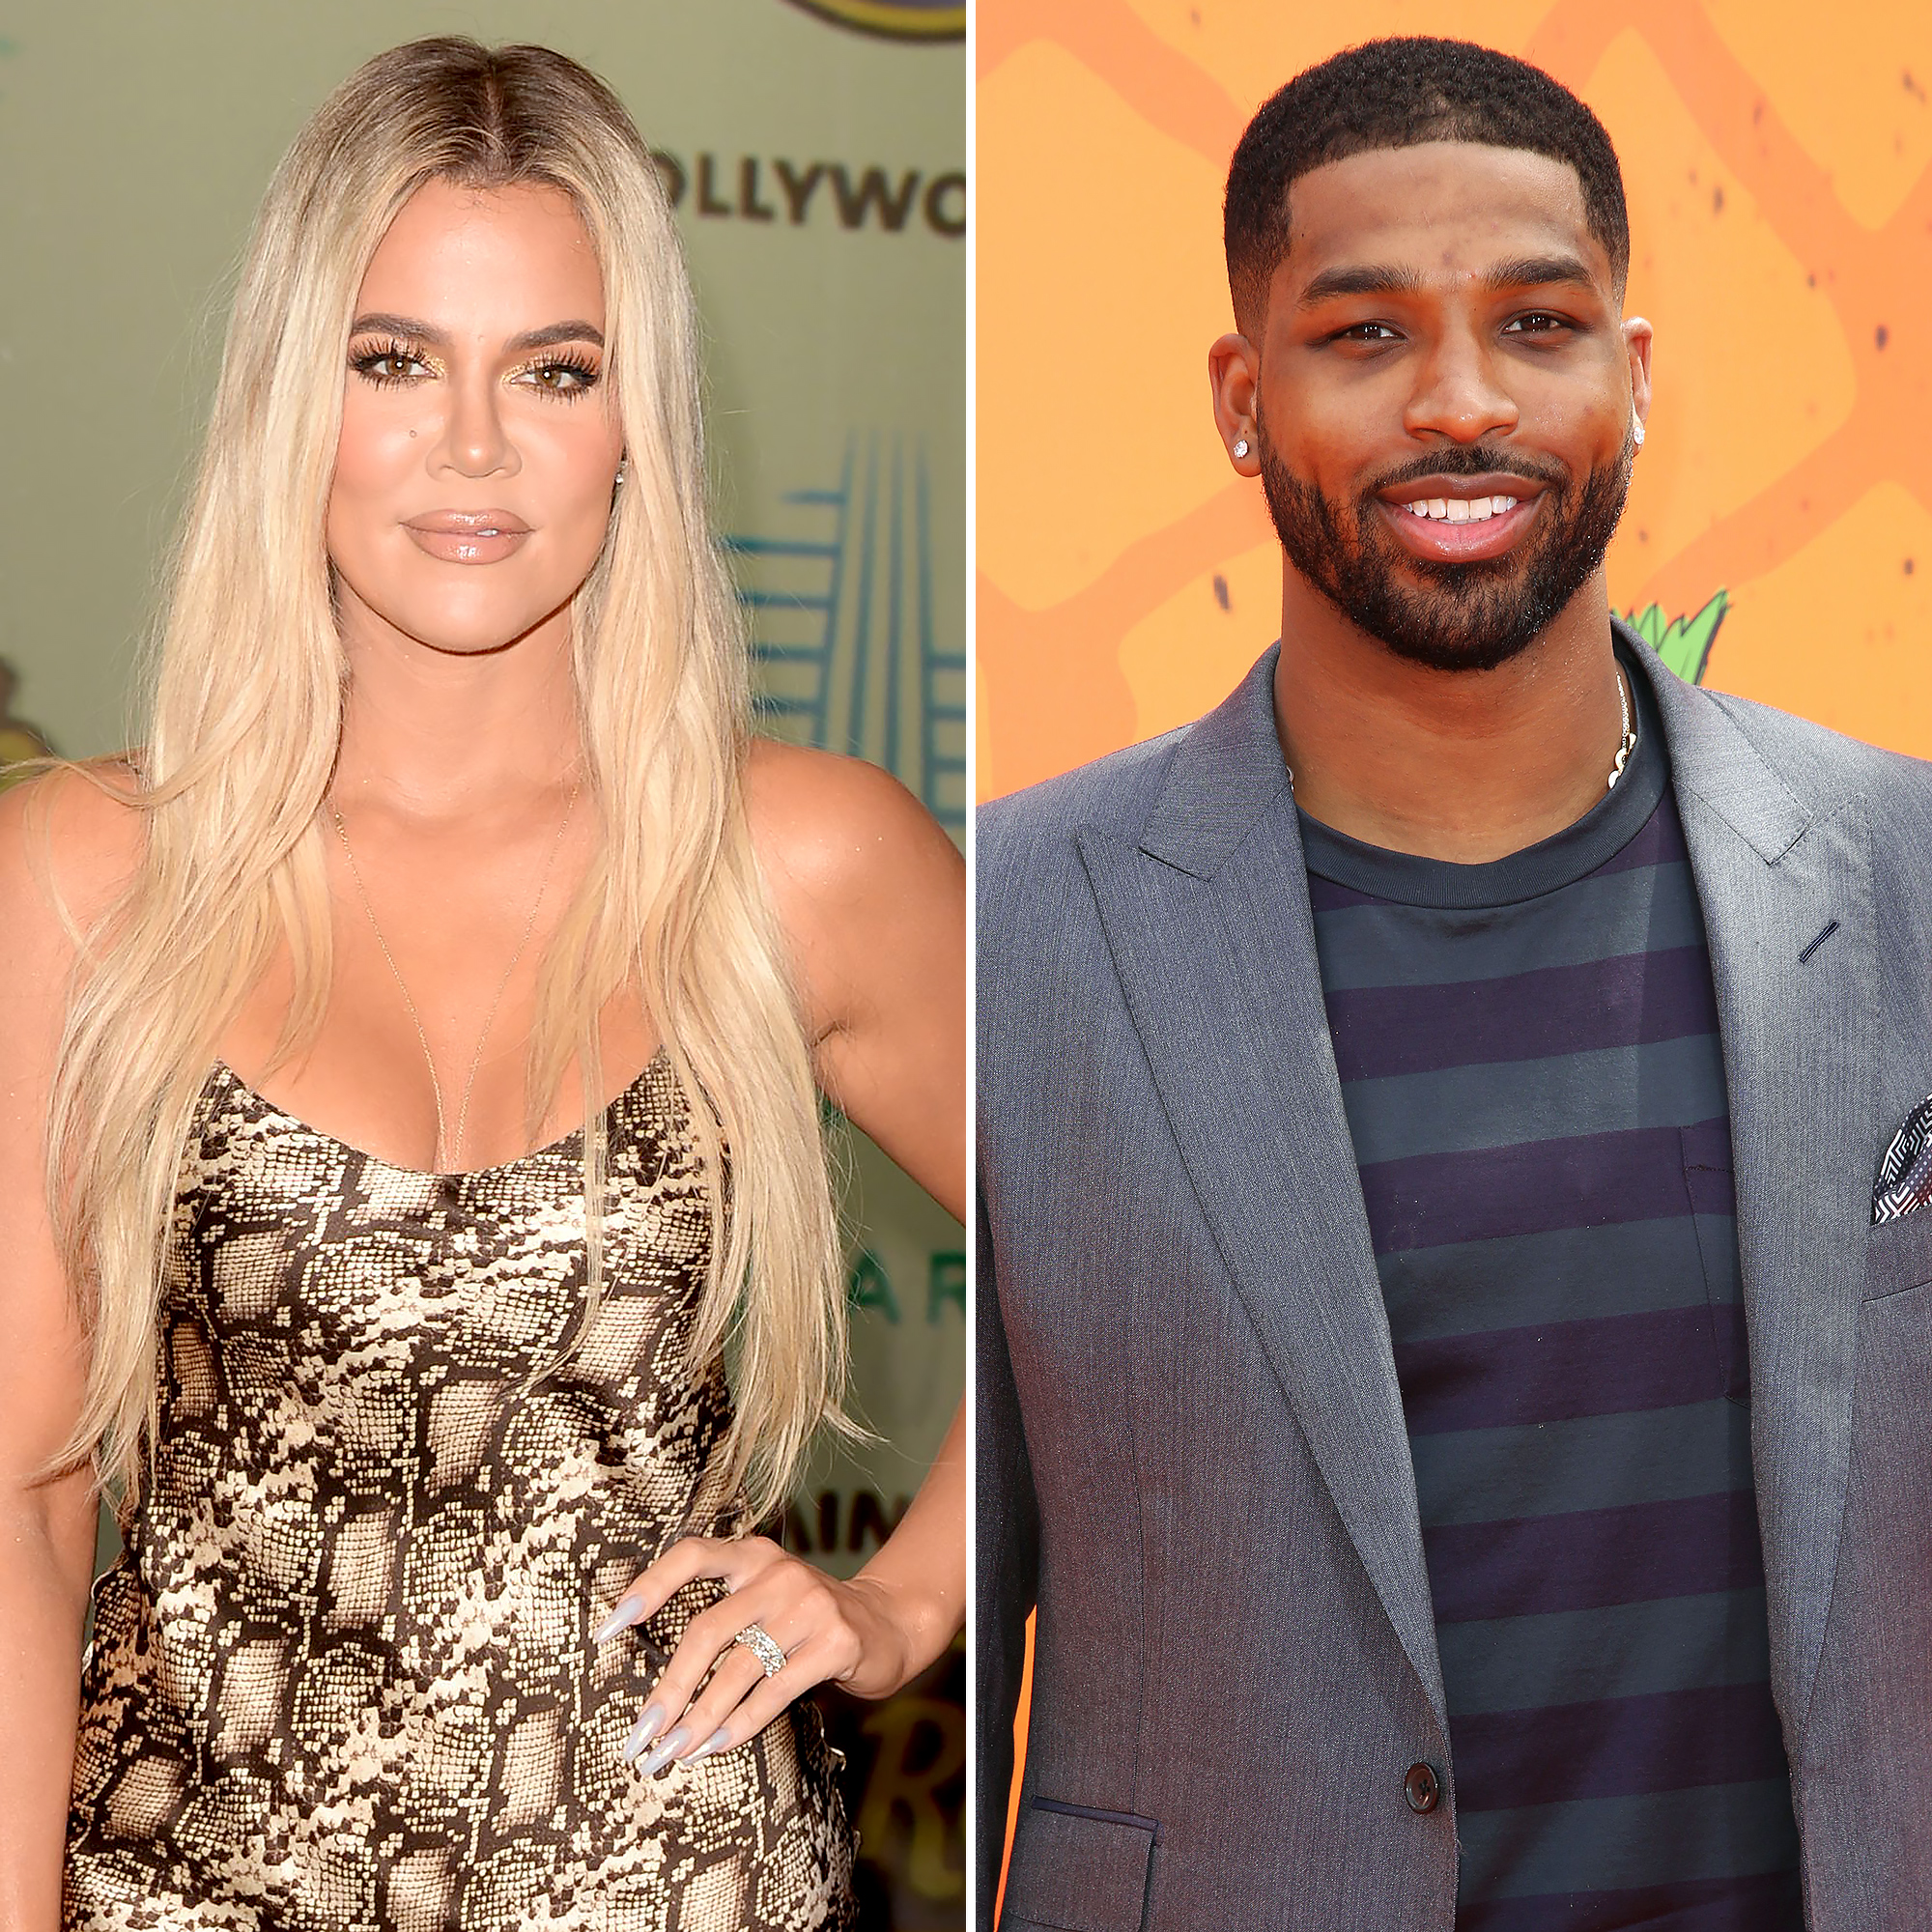 Khloe Kardashian Responds to Rumors Shes Pregnant With Her and Tristan Thompson Second Baby